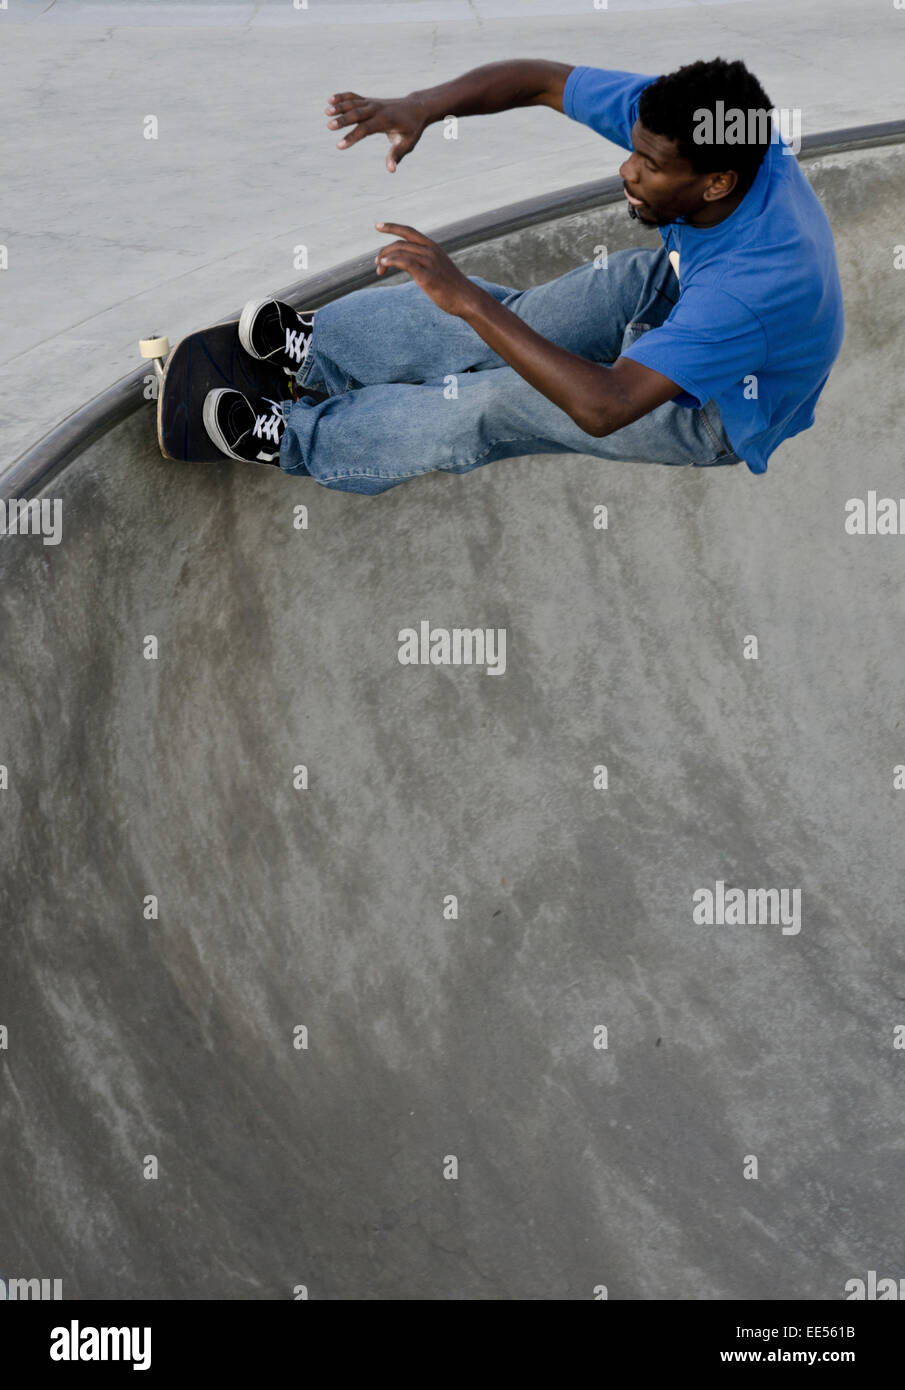 Skateboarder carving in bowl during the day - Stock Image